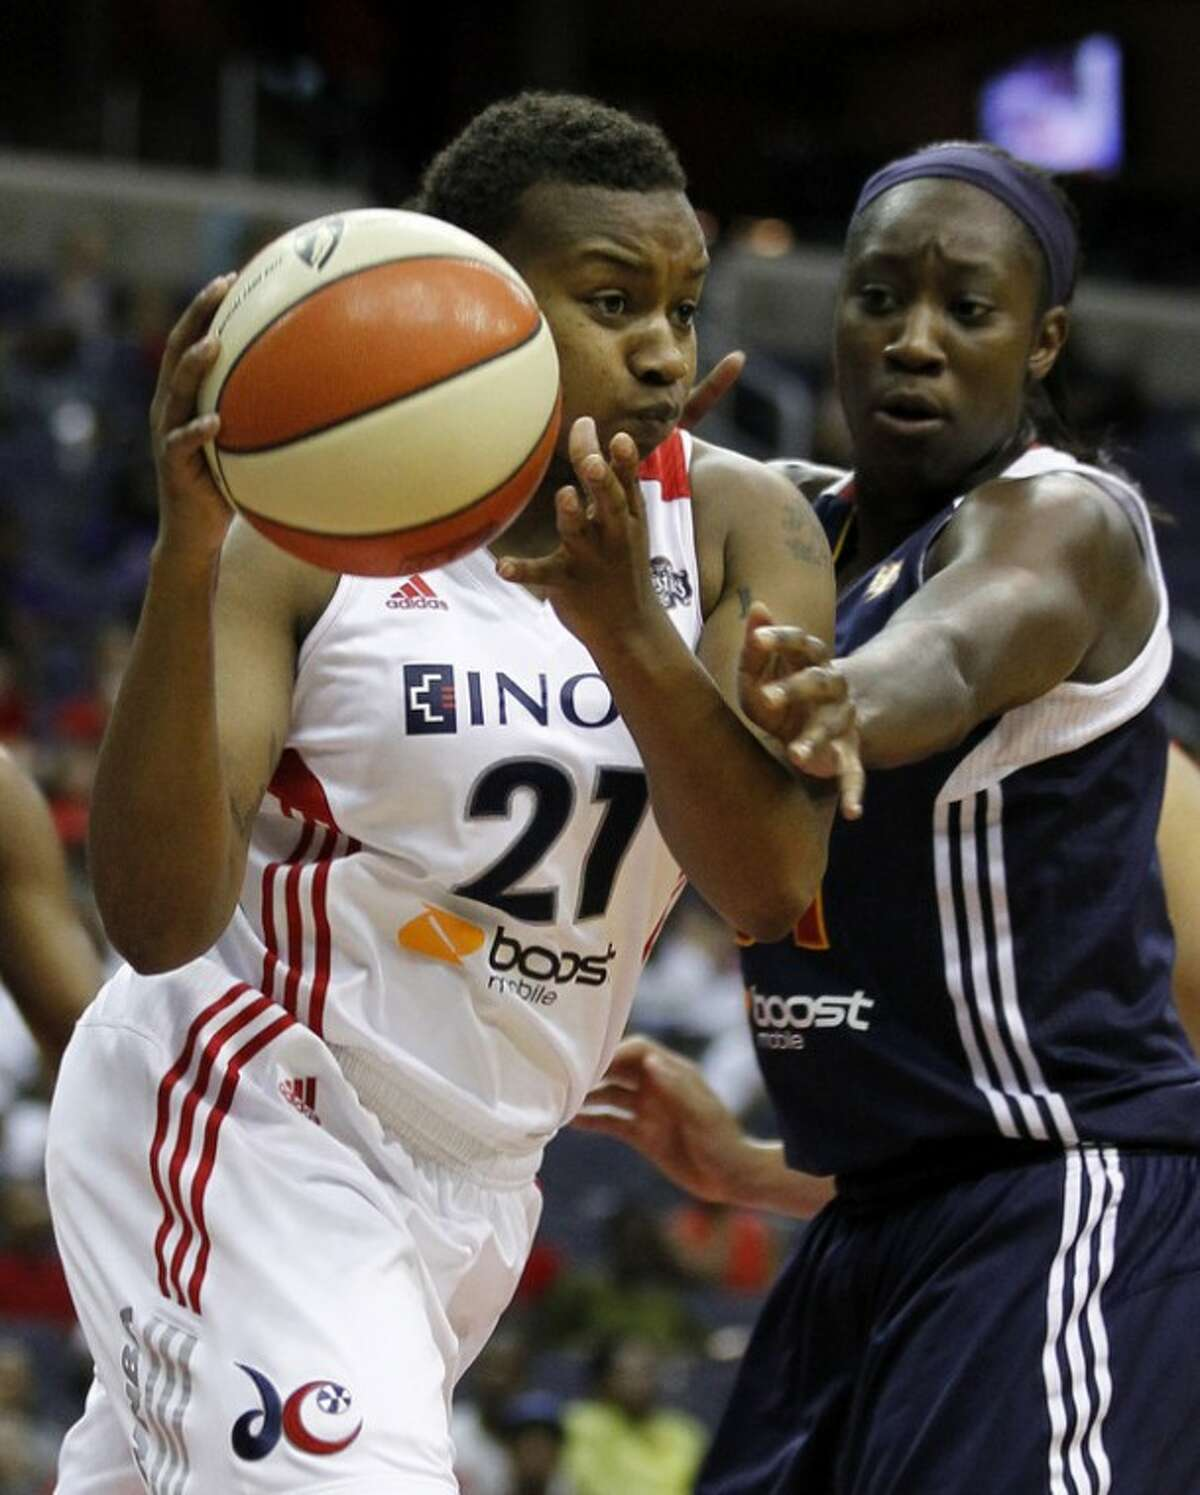 Washington Mystics guard Natasha Lacy (21) looks to pass as she is guarded by Connecticut Sun center Tina Charles (31) during the first half of a WNBA basketball game, Tuesday, July 10, 2012, in Washington. (AP Photo/Alex Brandon)